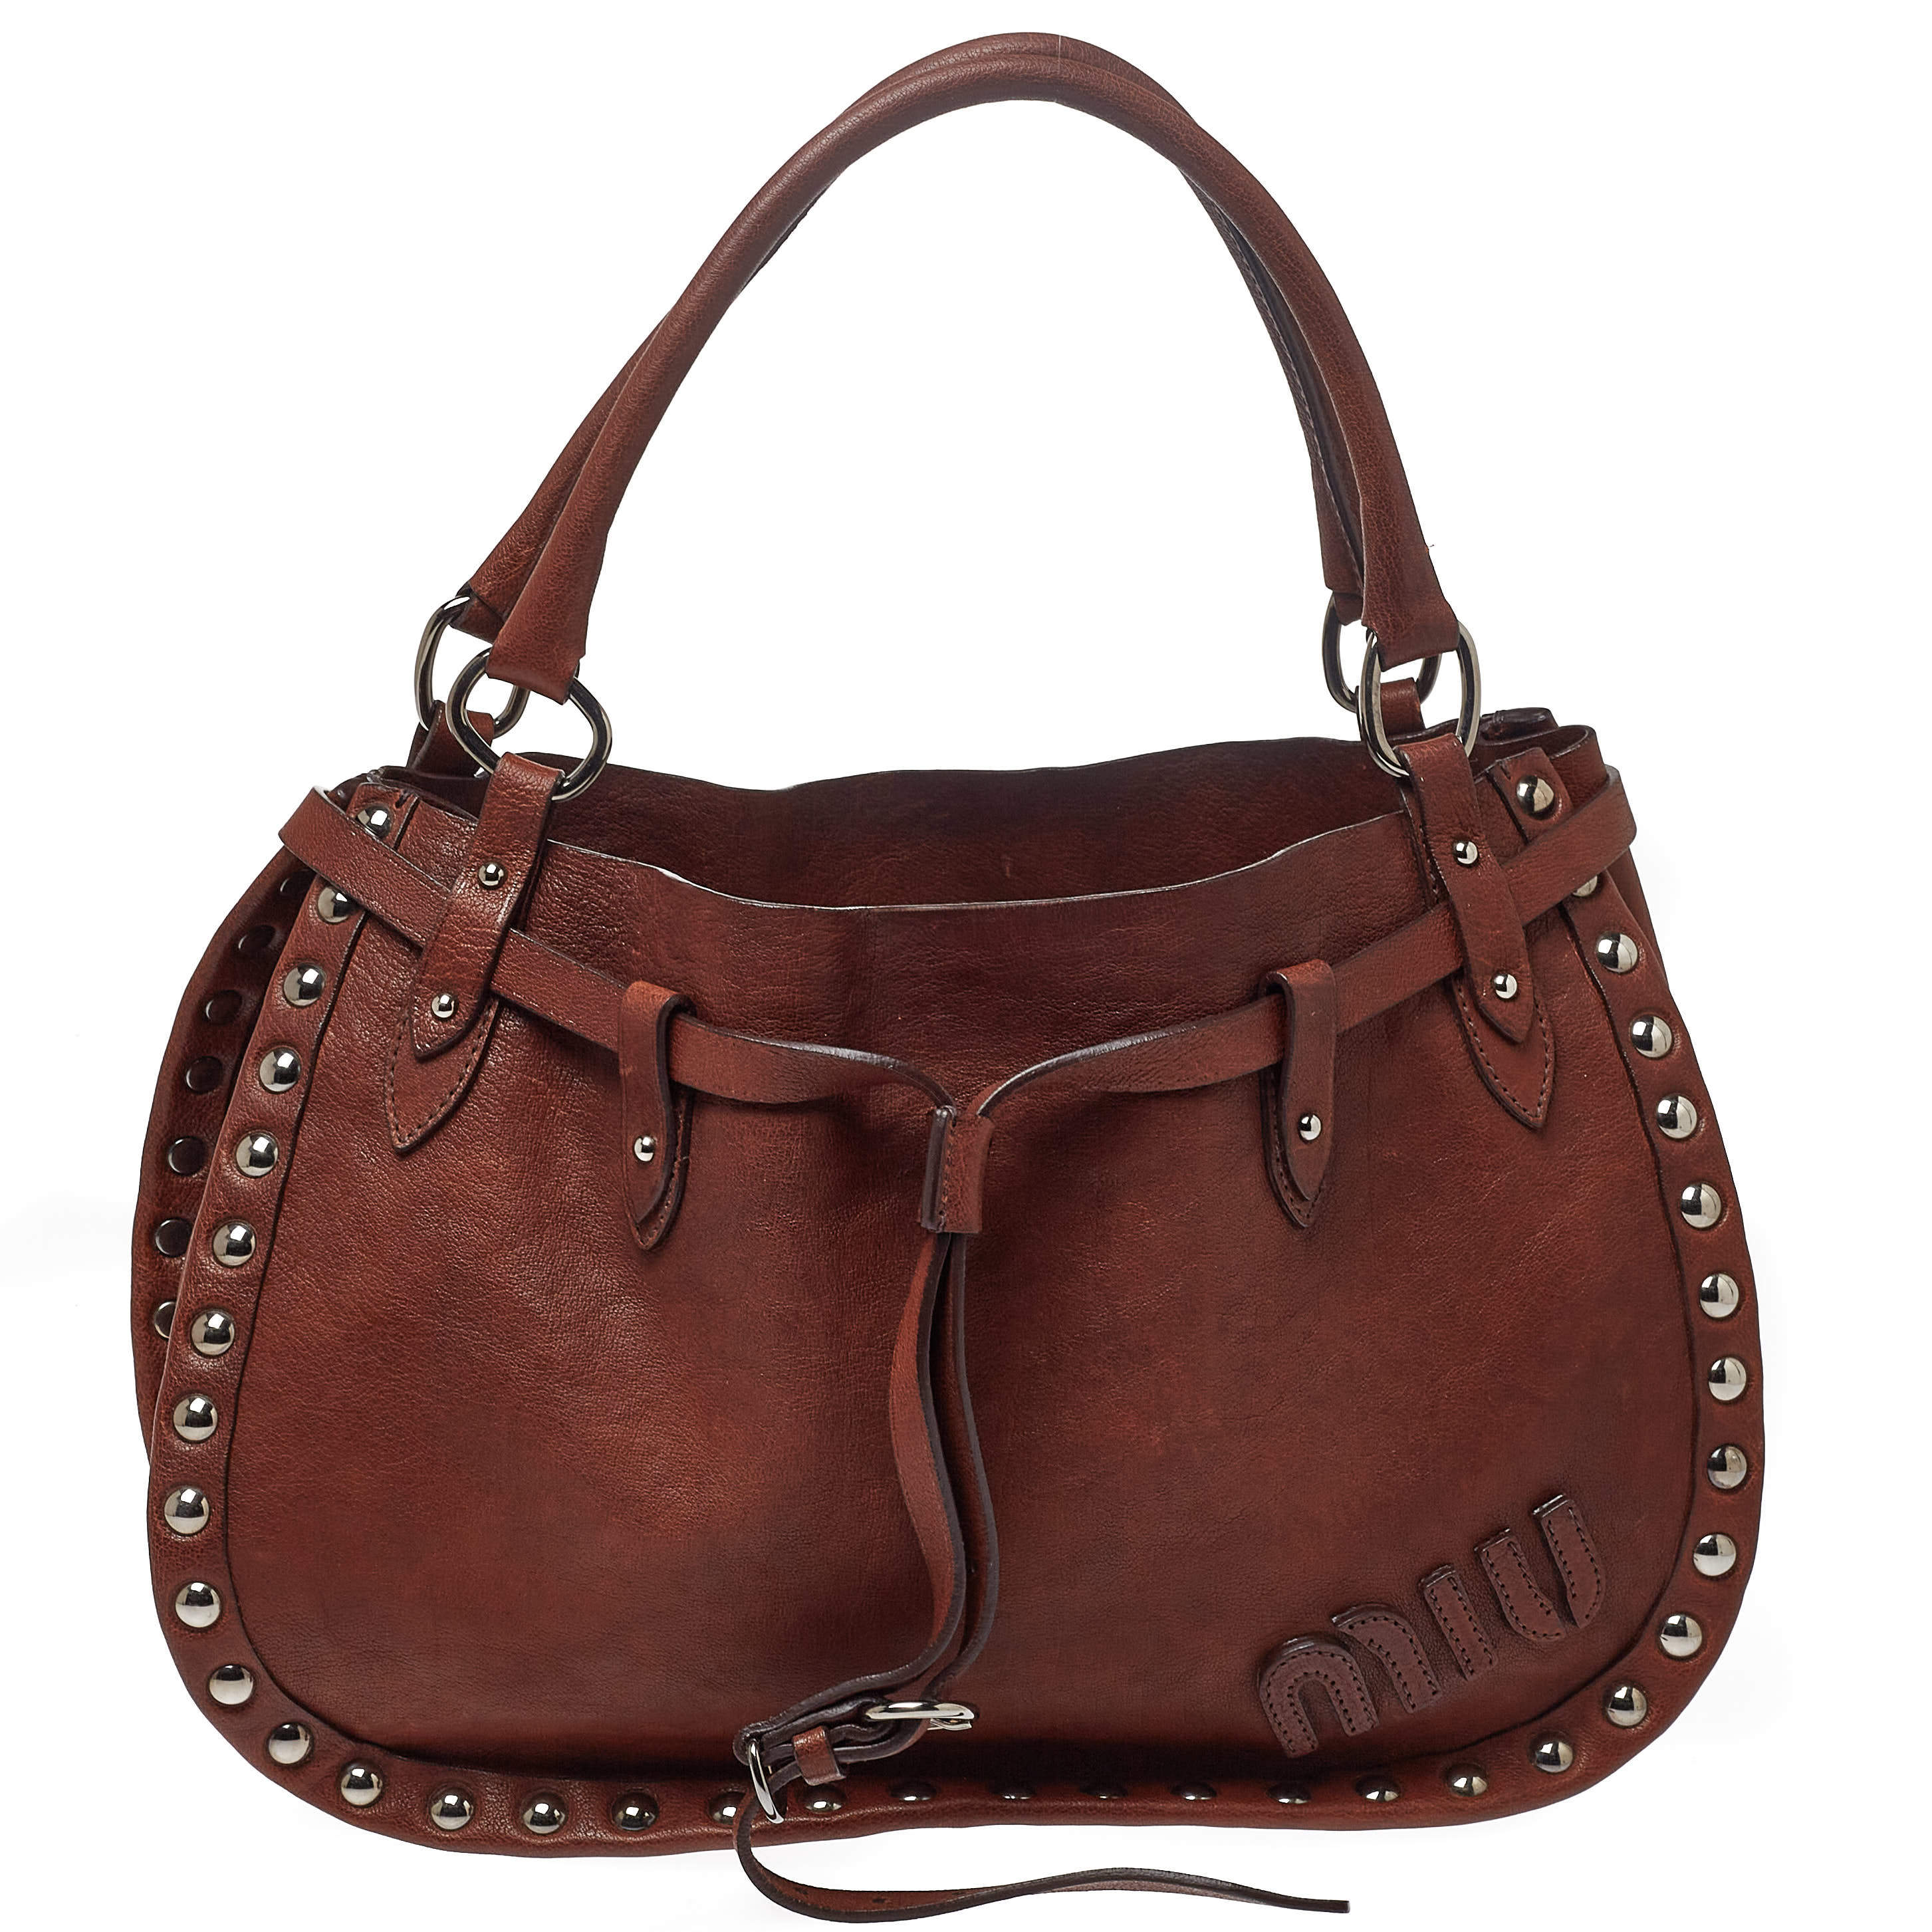 Miu Miu Brown Leather Studded Satchel